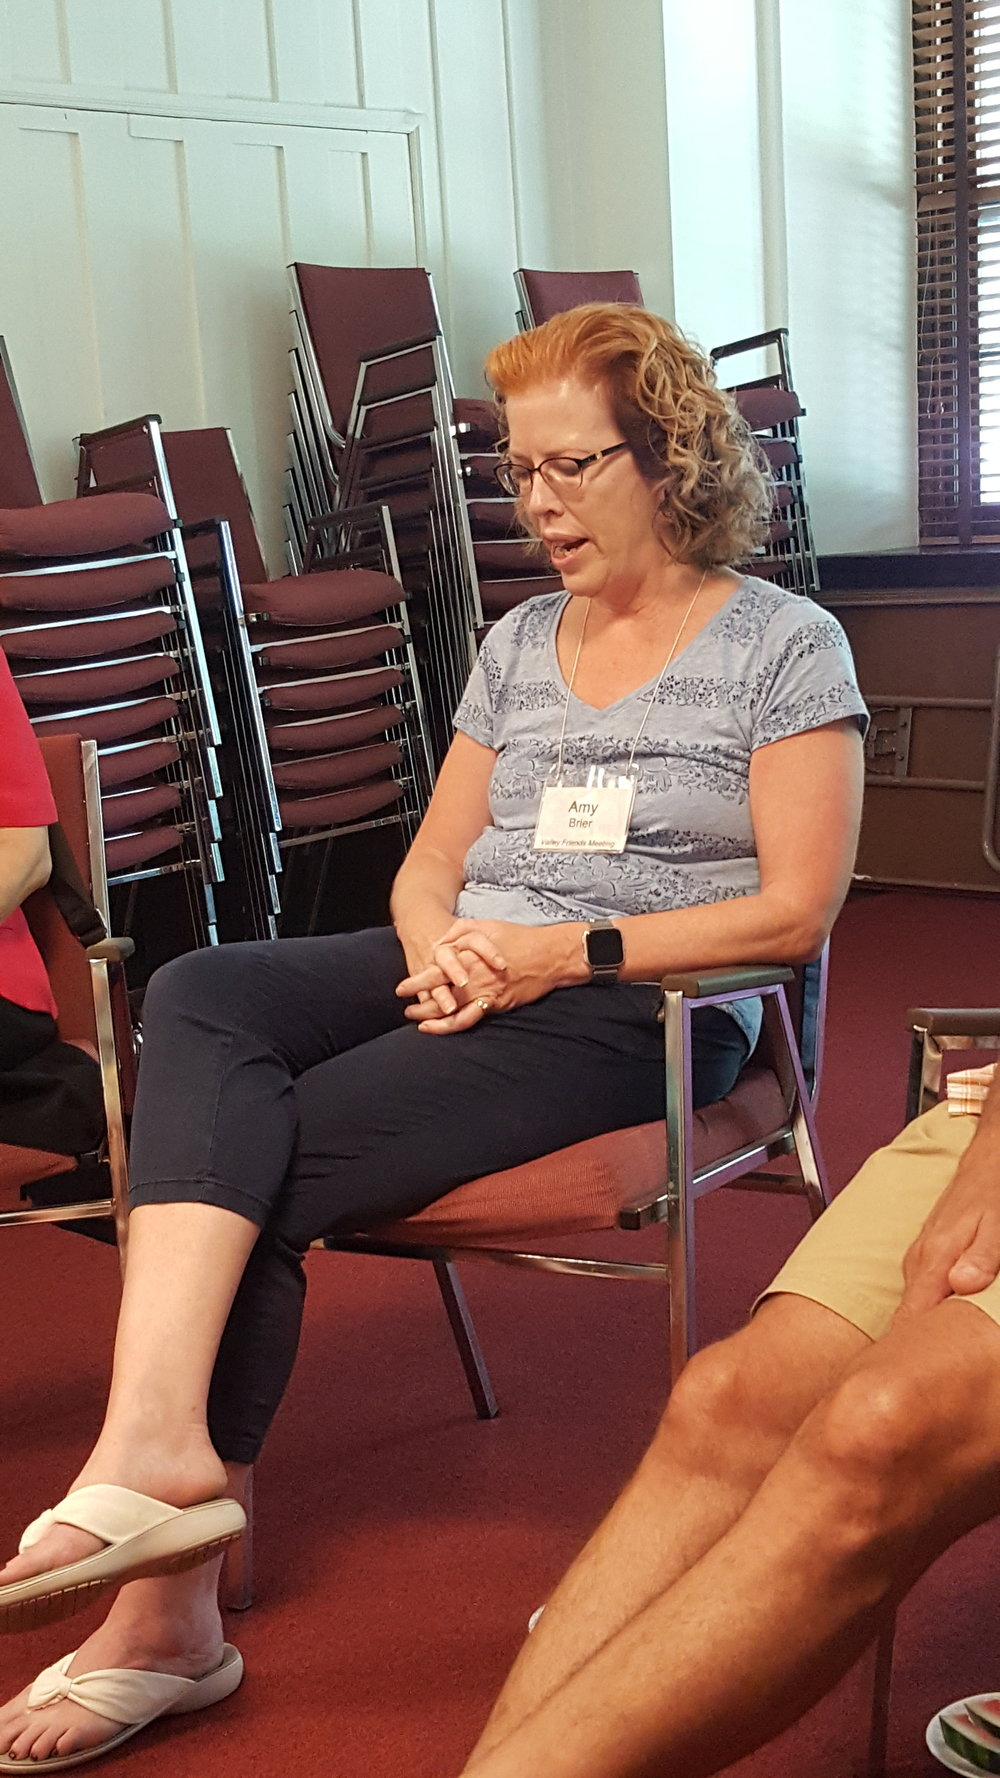 Amy B spoke of her history and explained her weekly phone prayer with a friend.